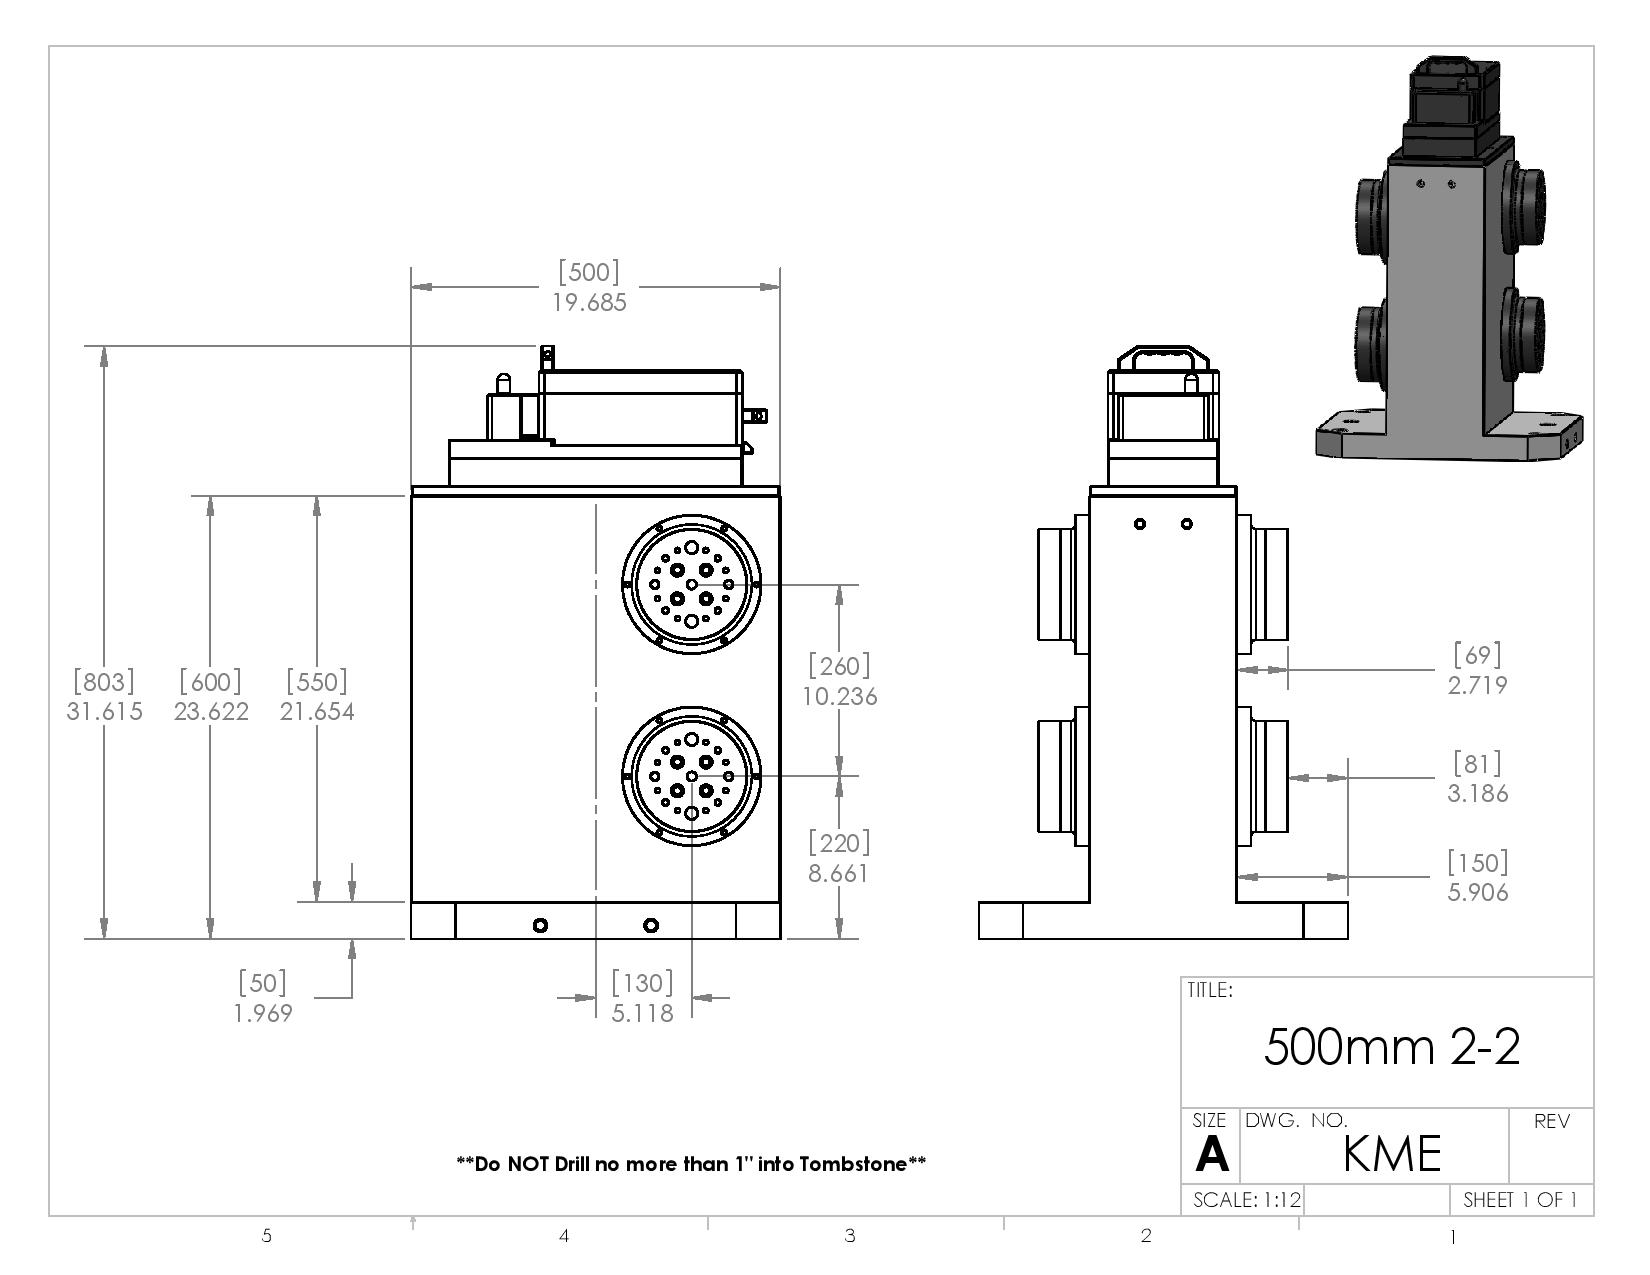 Ls7 Wiring Diagram Auto Electrical Mp 202 Kenwood Model Kdc Related With